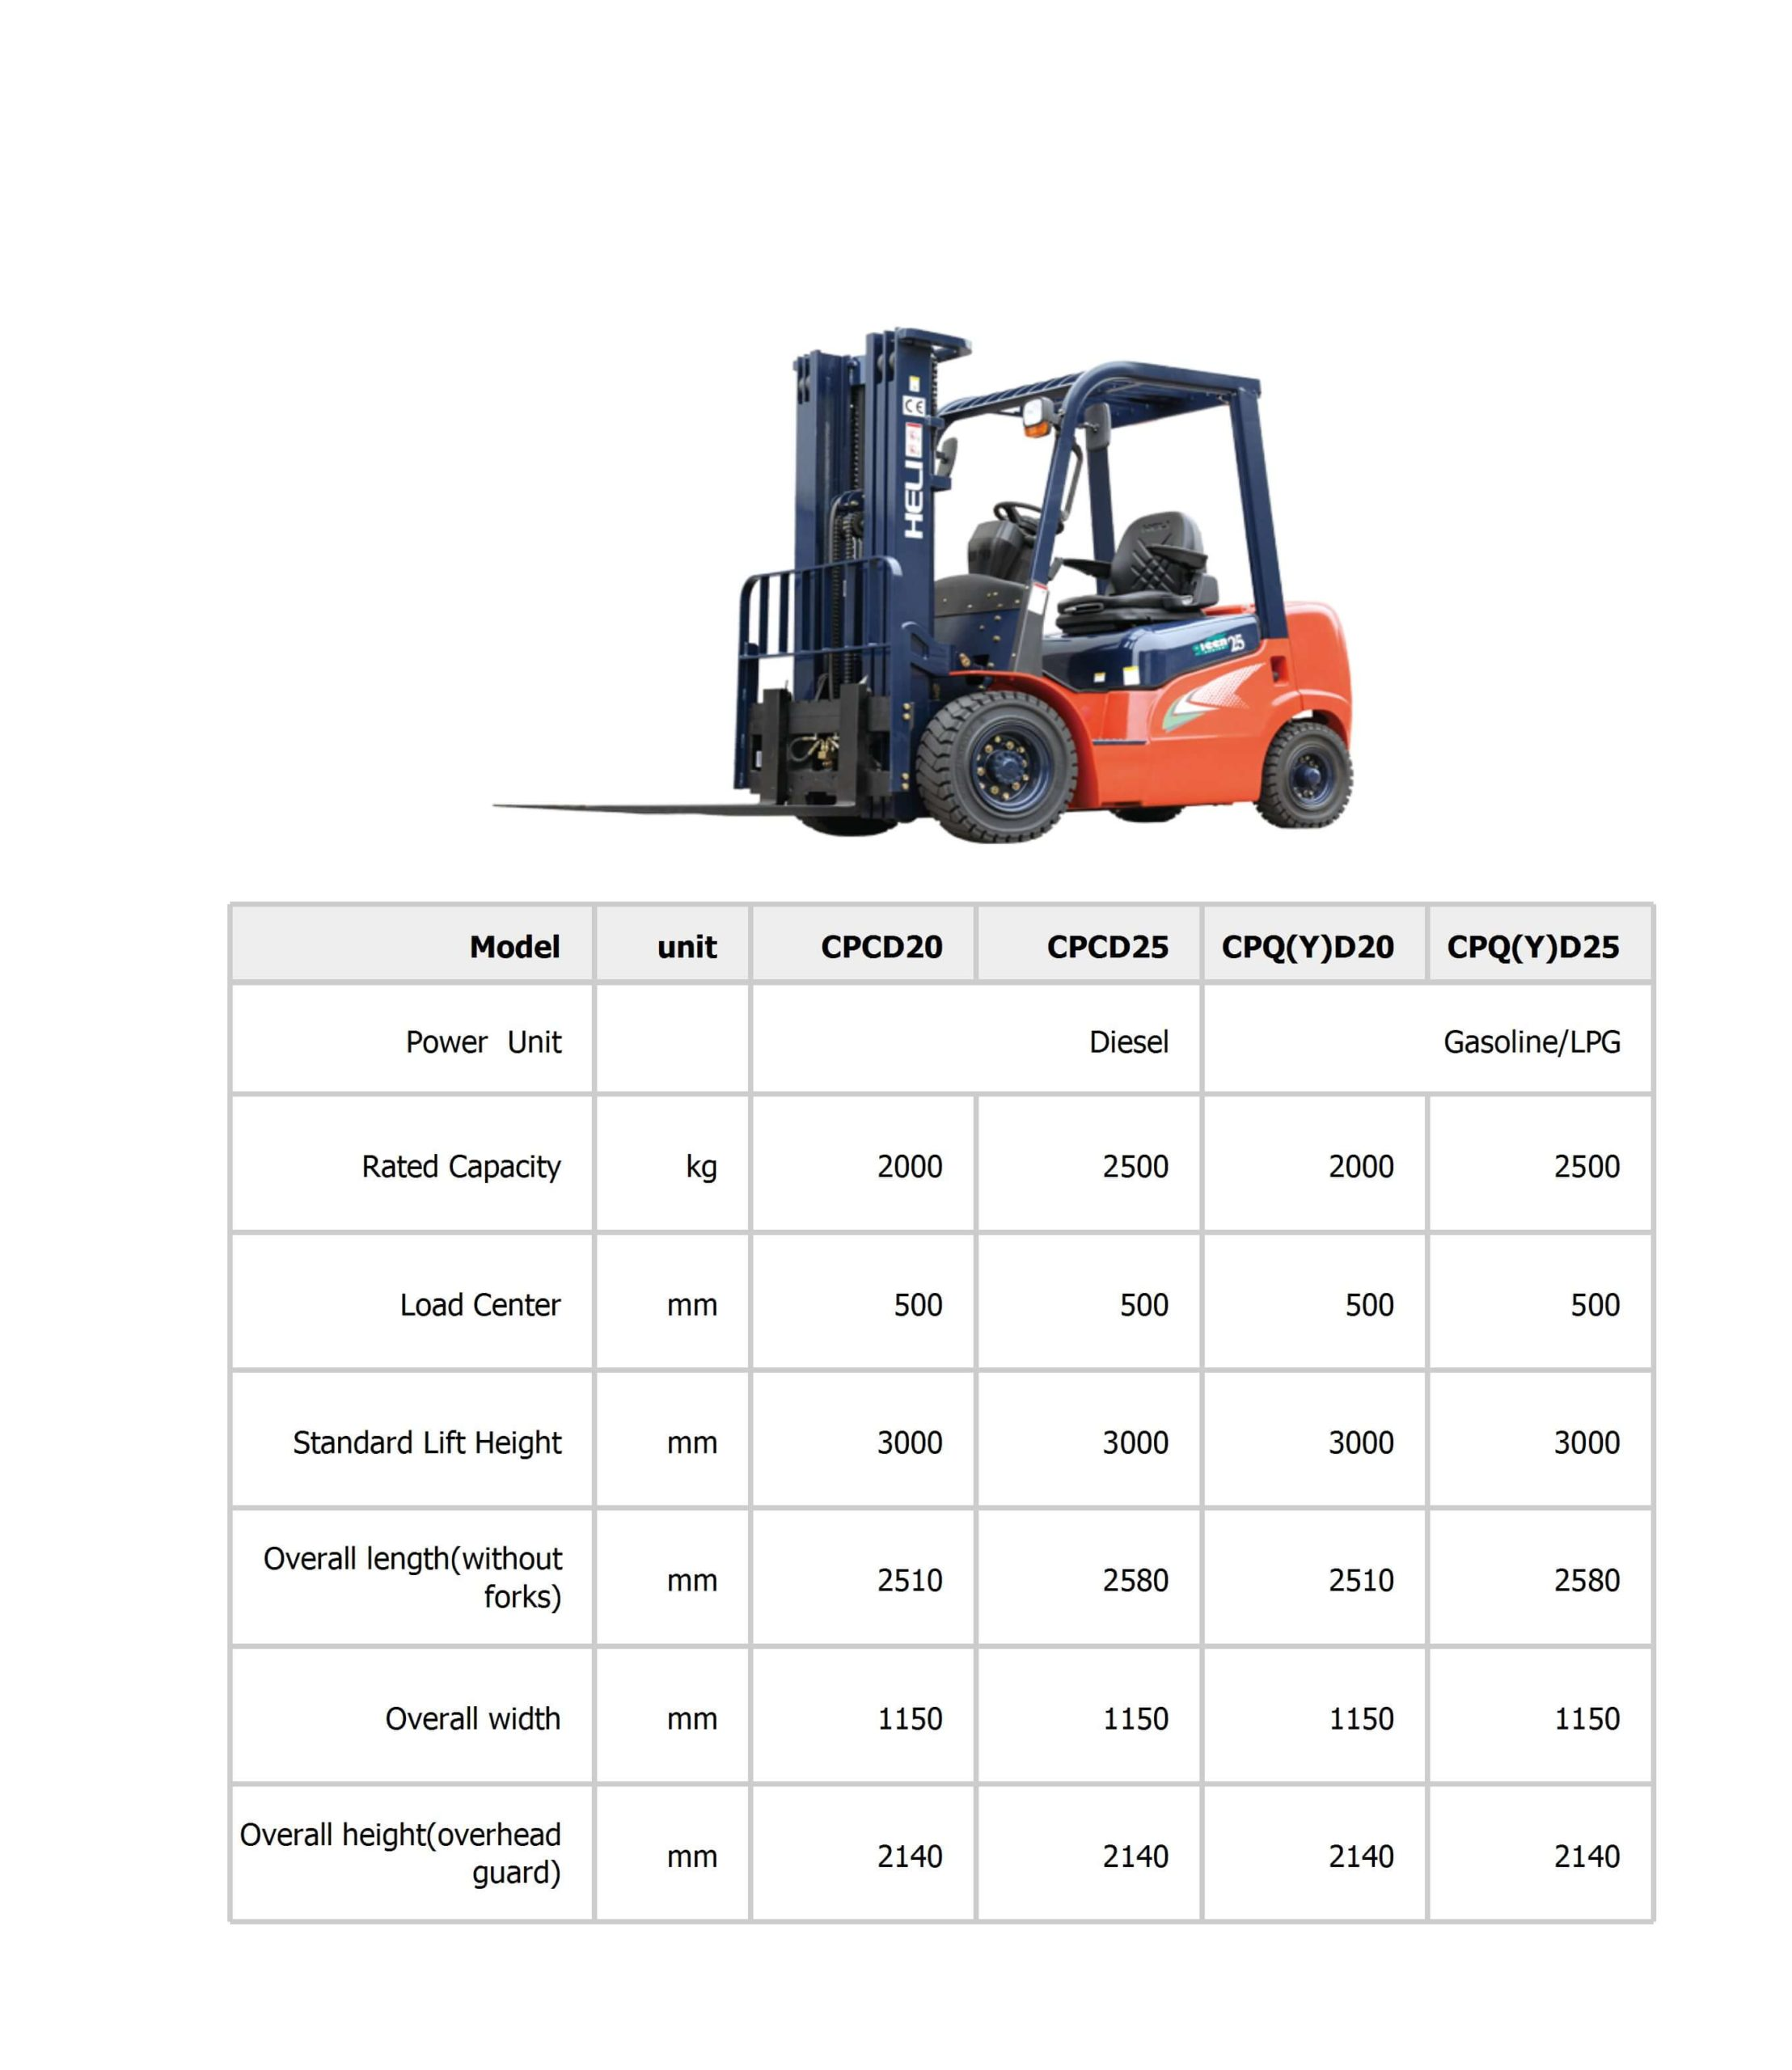 disel 2-2.5 ton-specification